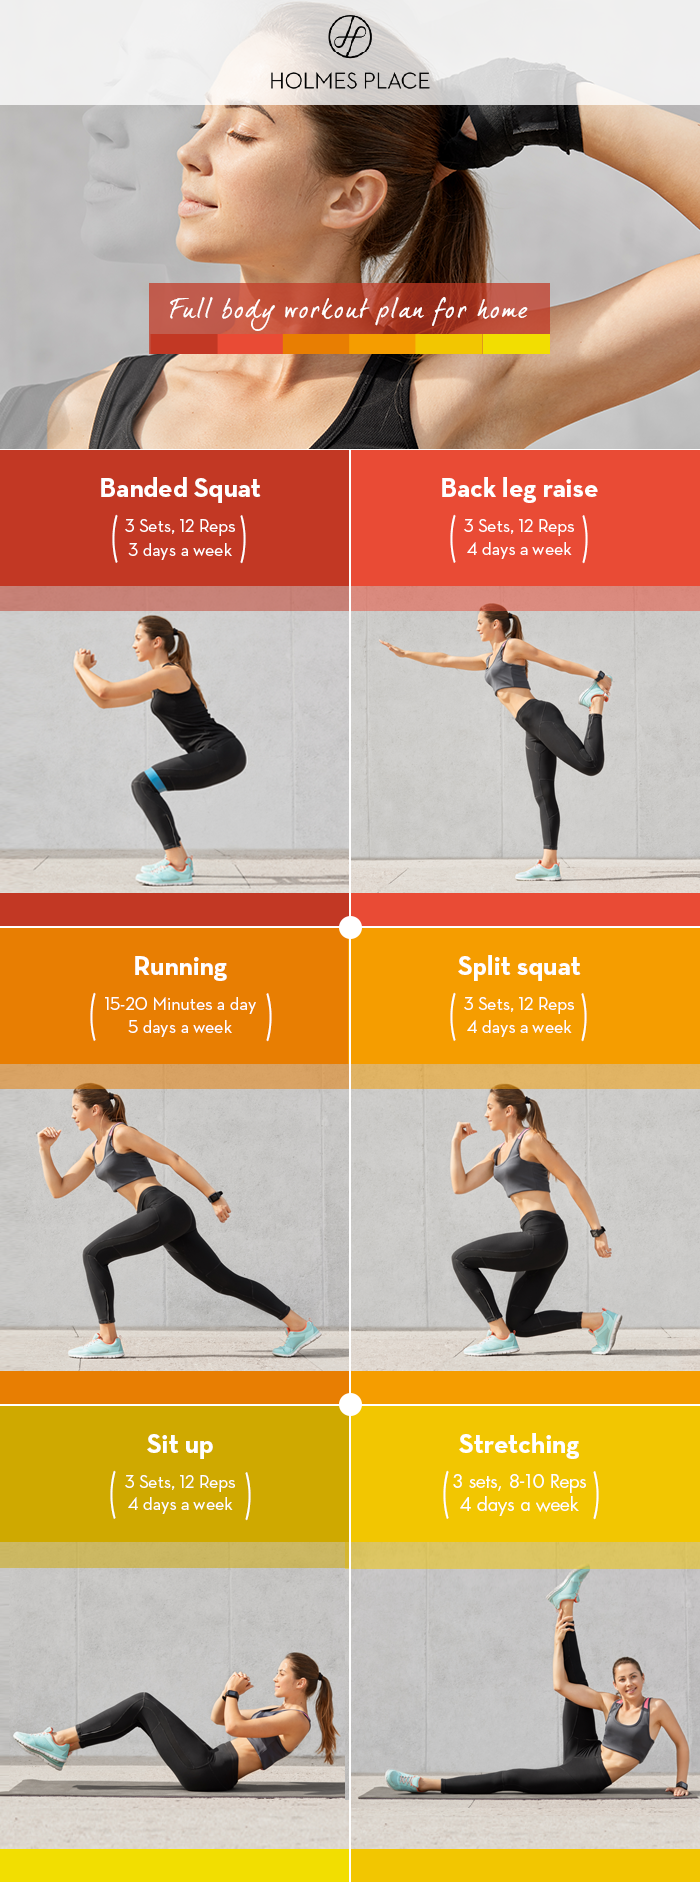 Holmes Place | Full body workout plan for home